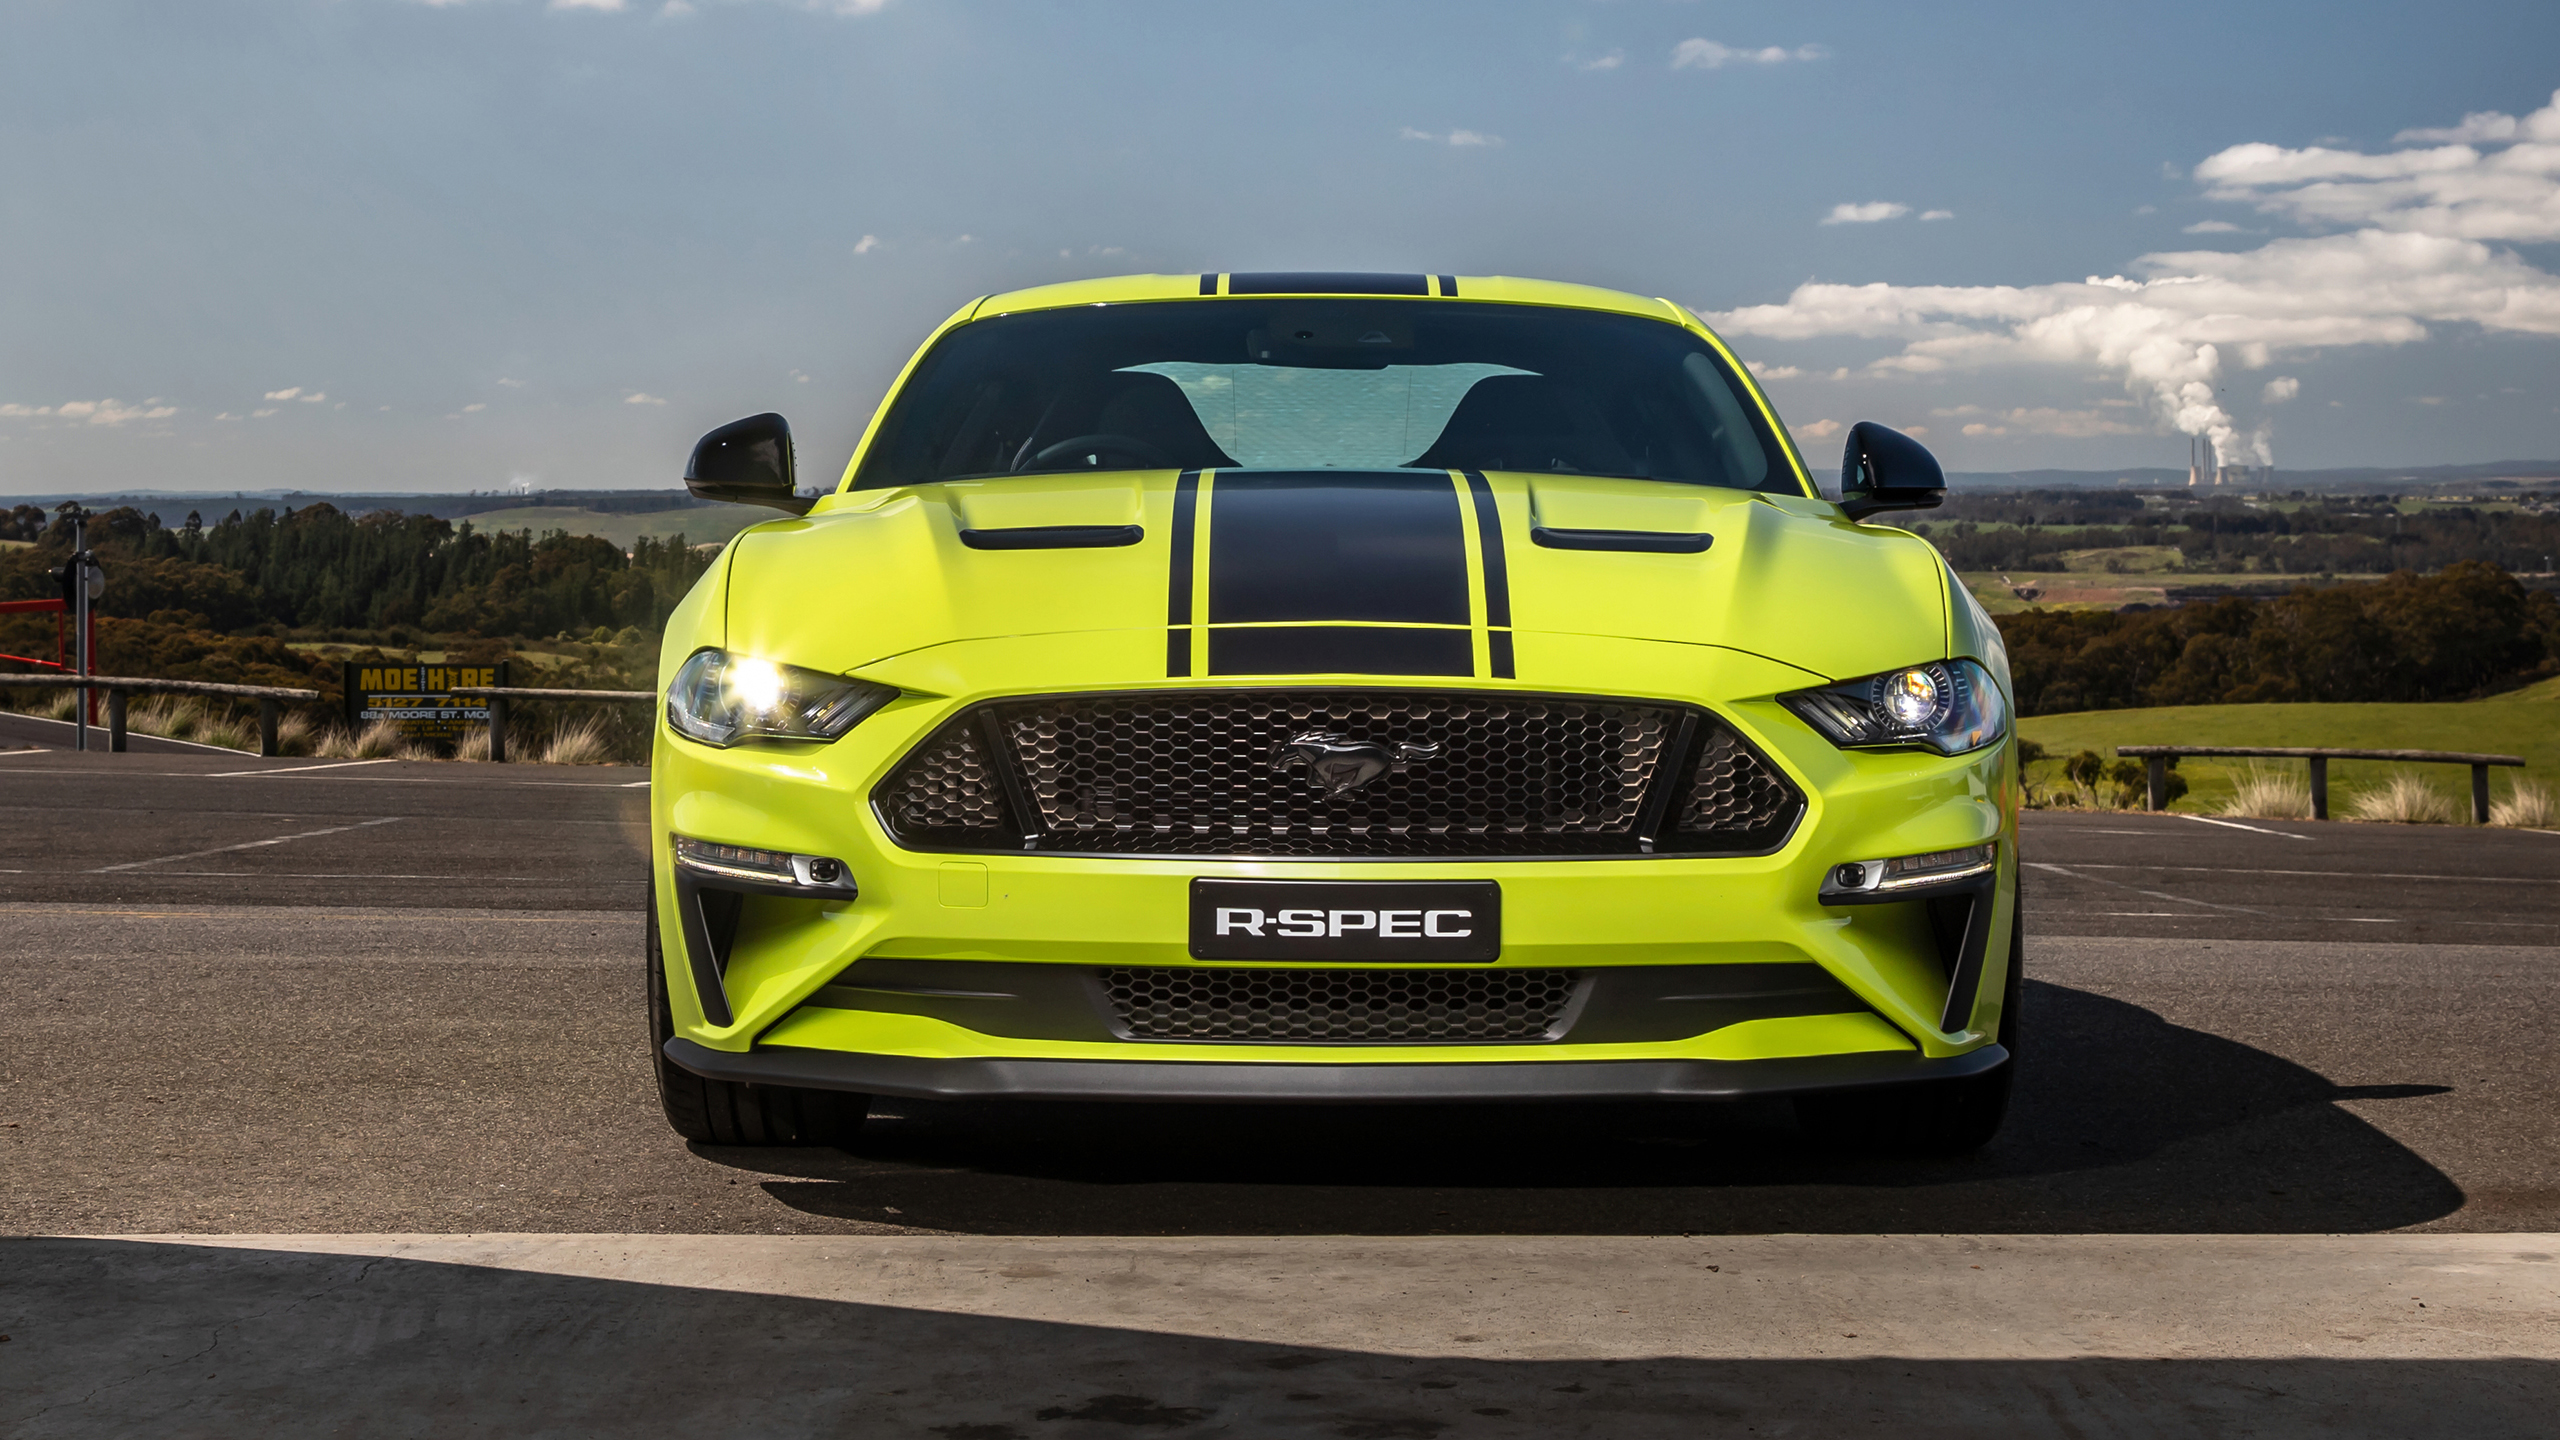 Ford Mustang Gt Fastback R Spec 2019 2 Wallpaper Hd Car